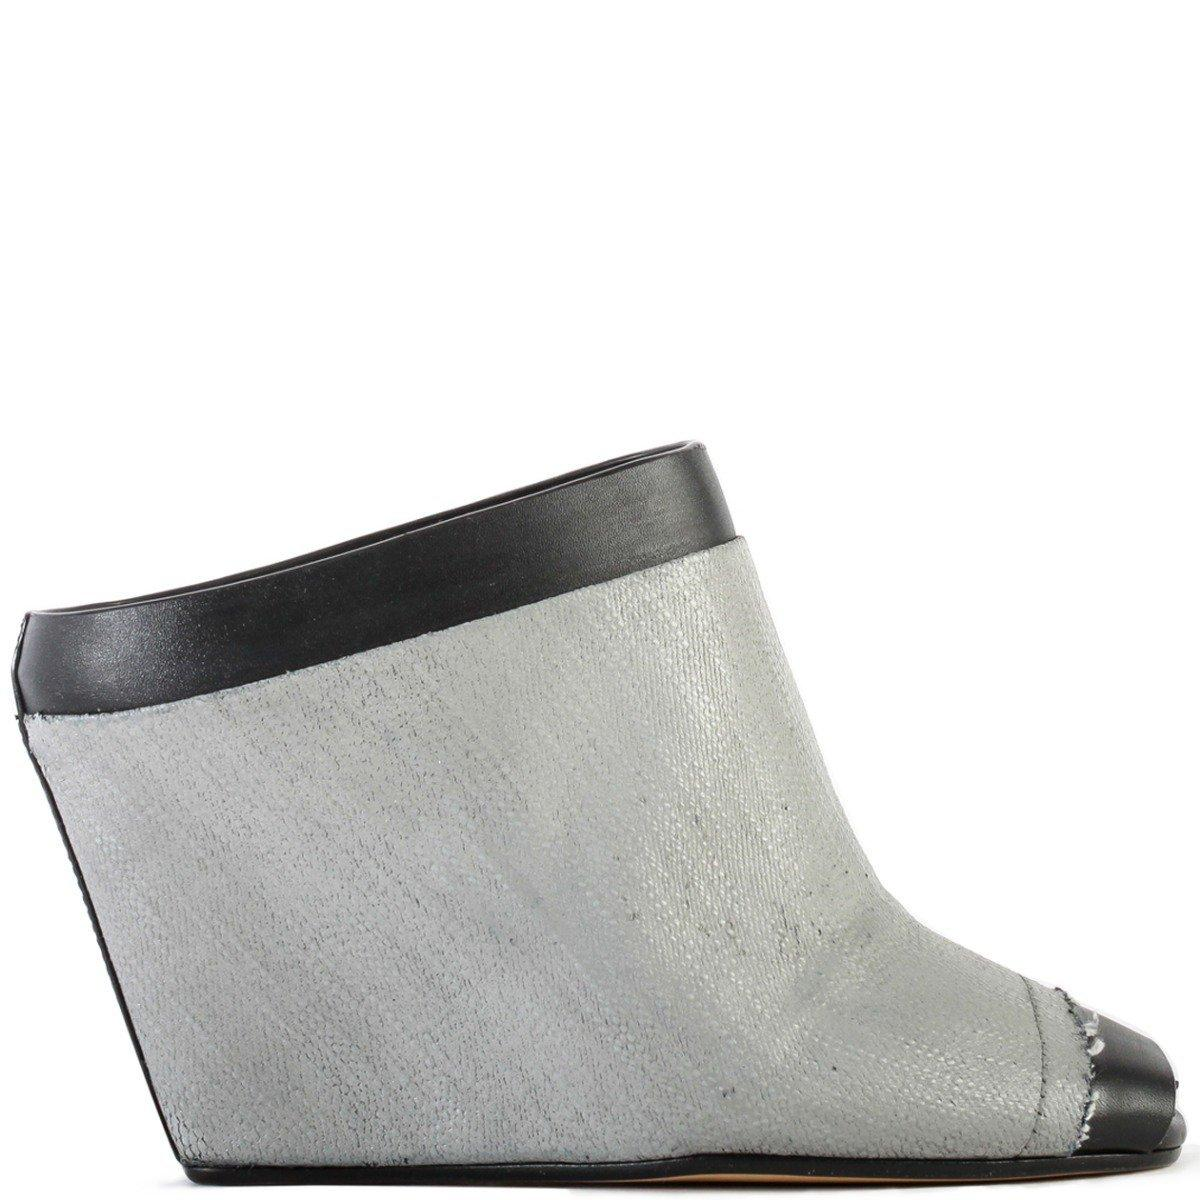 dc14e5b76980 Lyst - Rick Owens Wedge Slide Sandals Black oyster